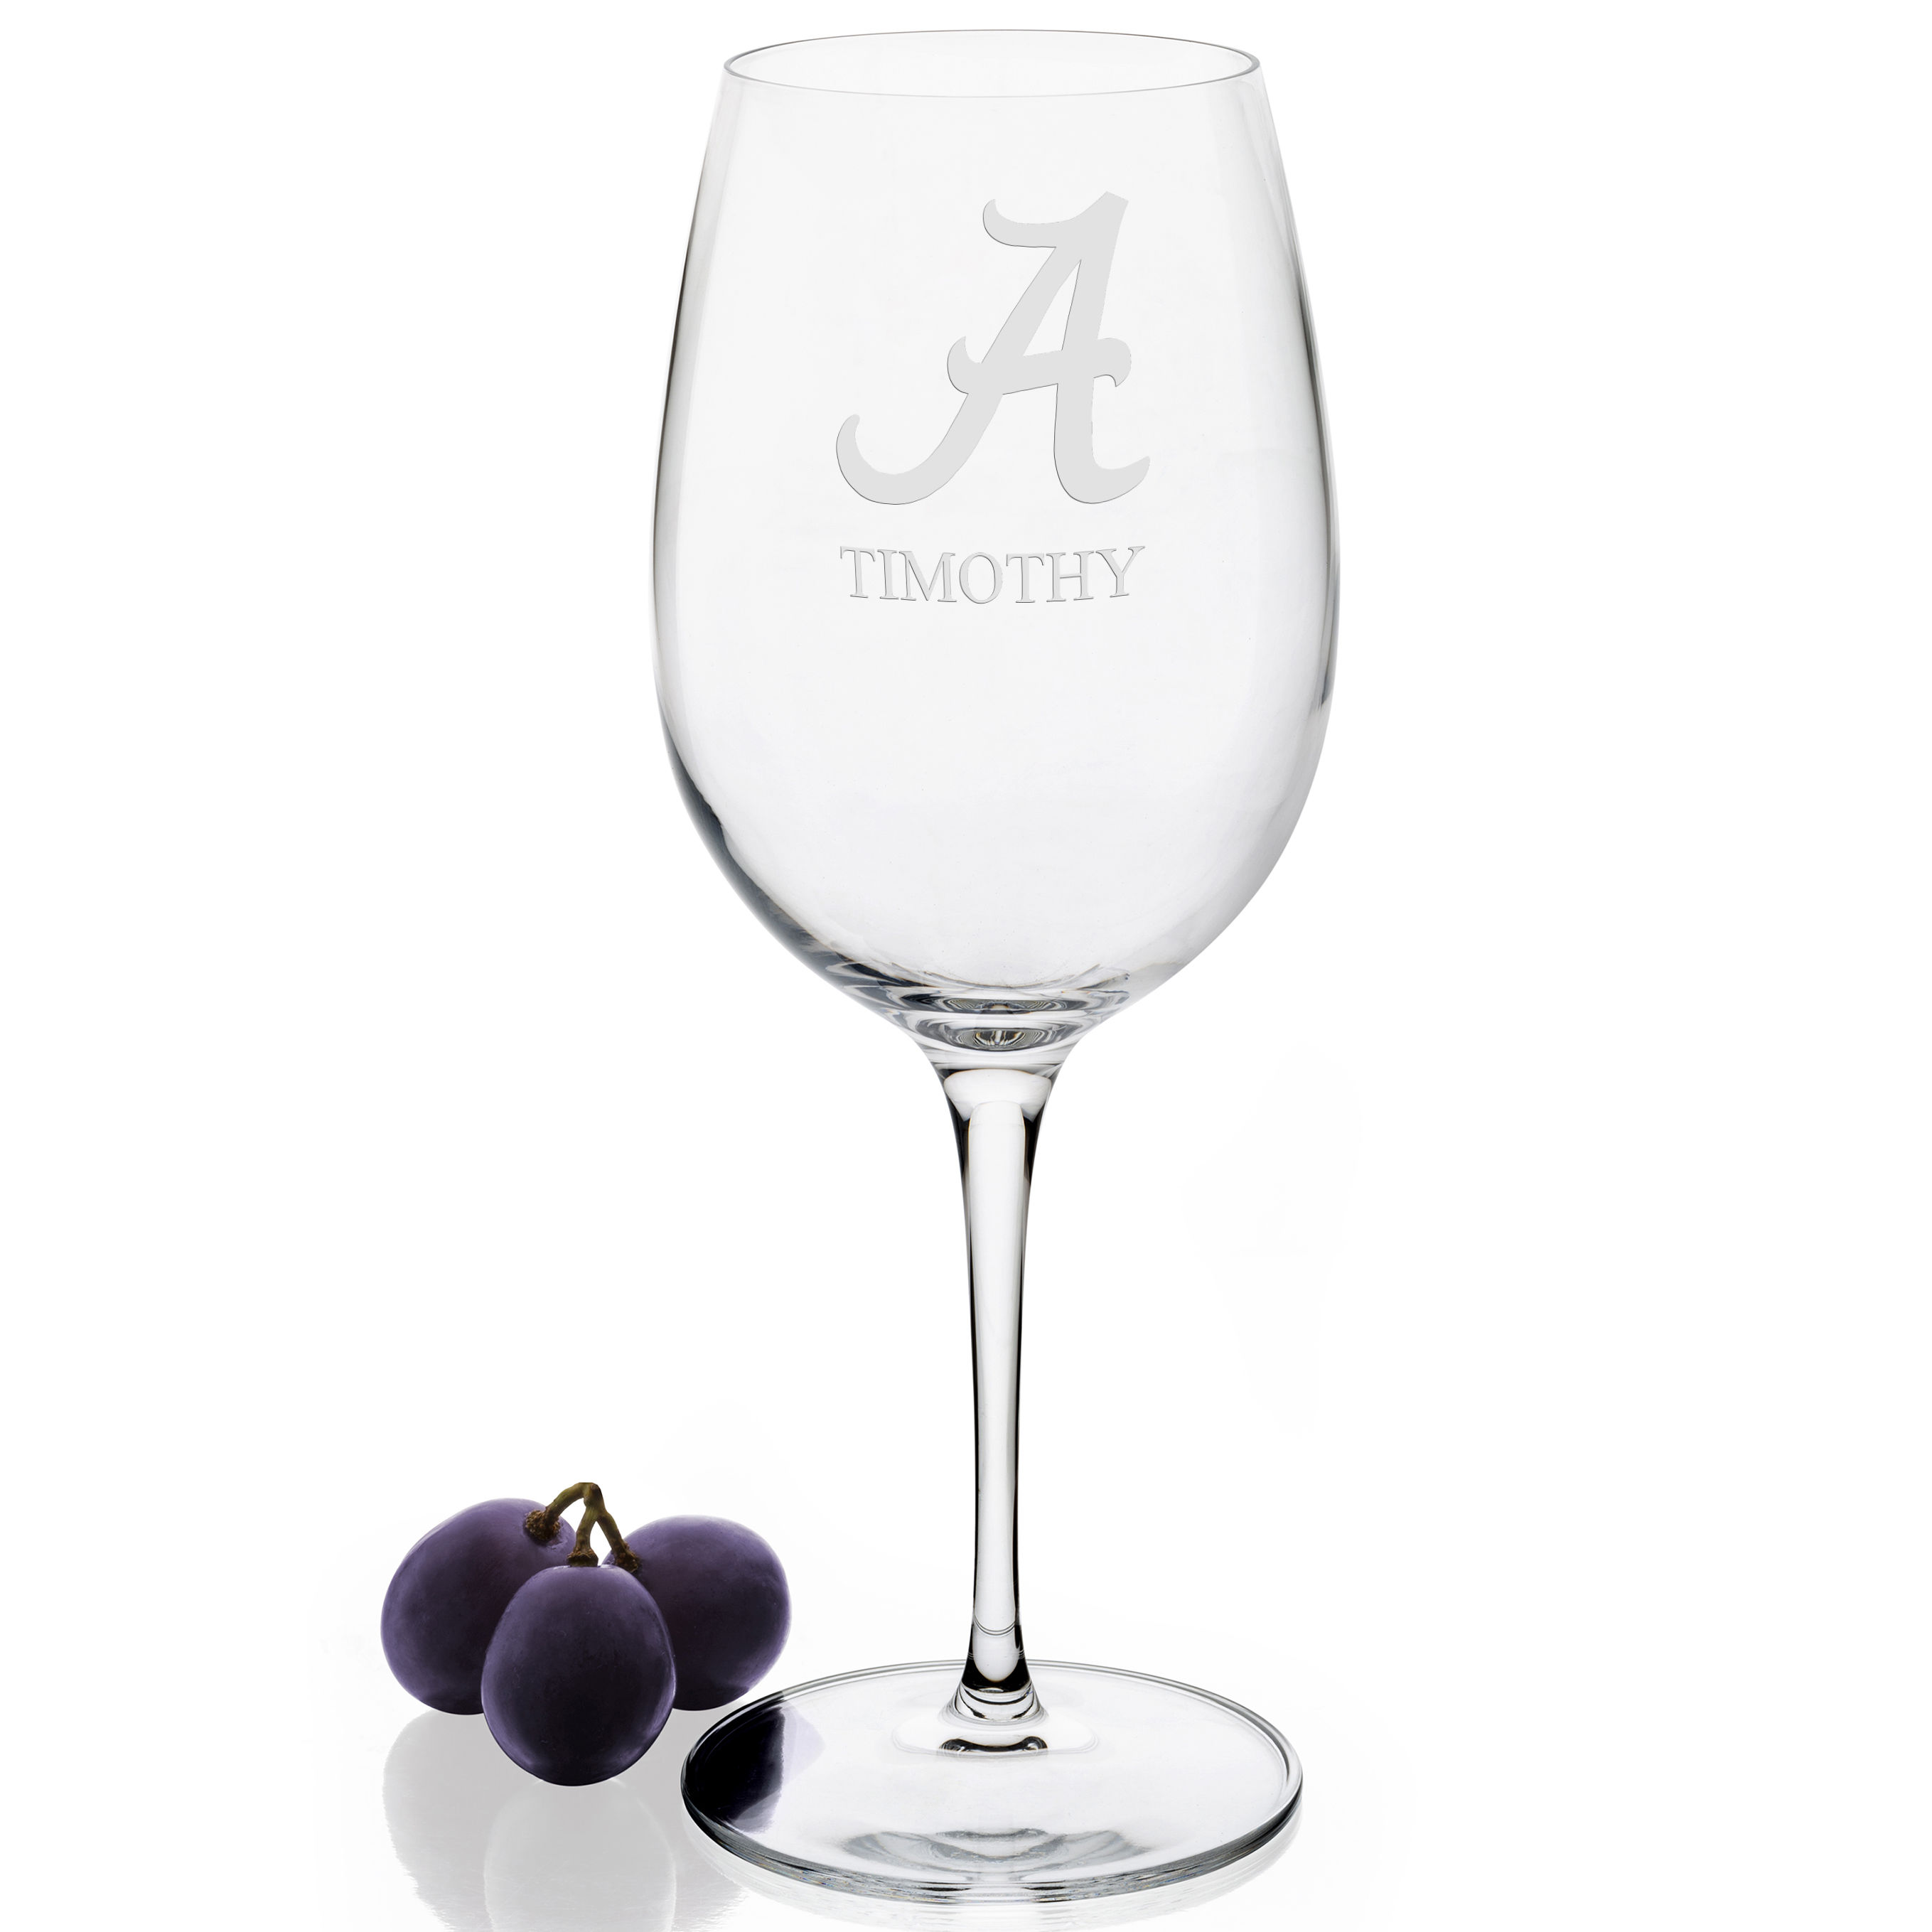 University of Alabama Red Wine Glasses - Set of 4 - Image 2